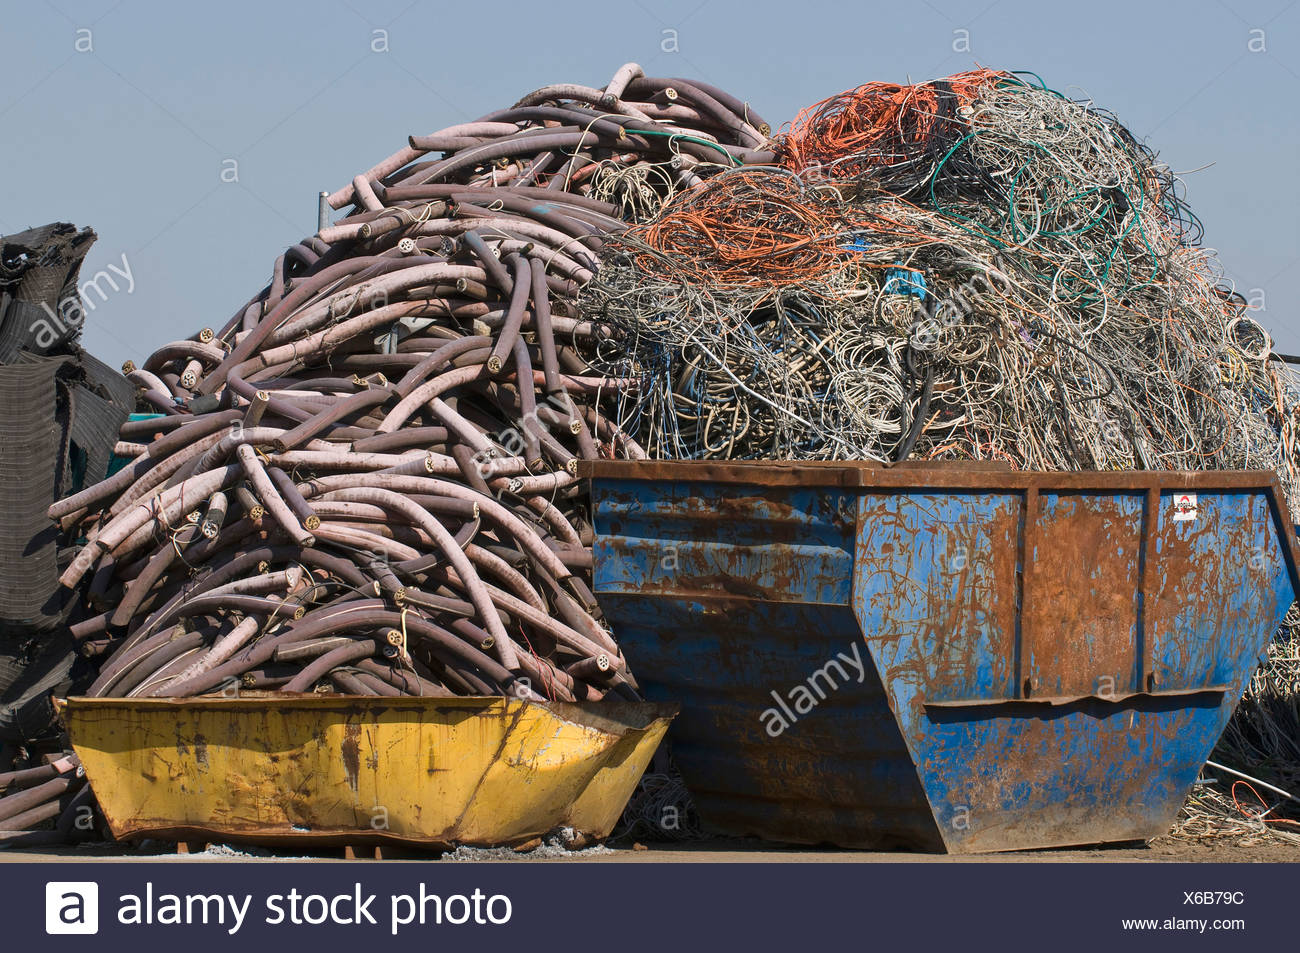 Metal recycling, containers filled with cable waste - Stock Image